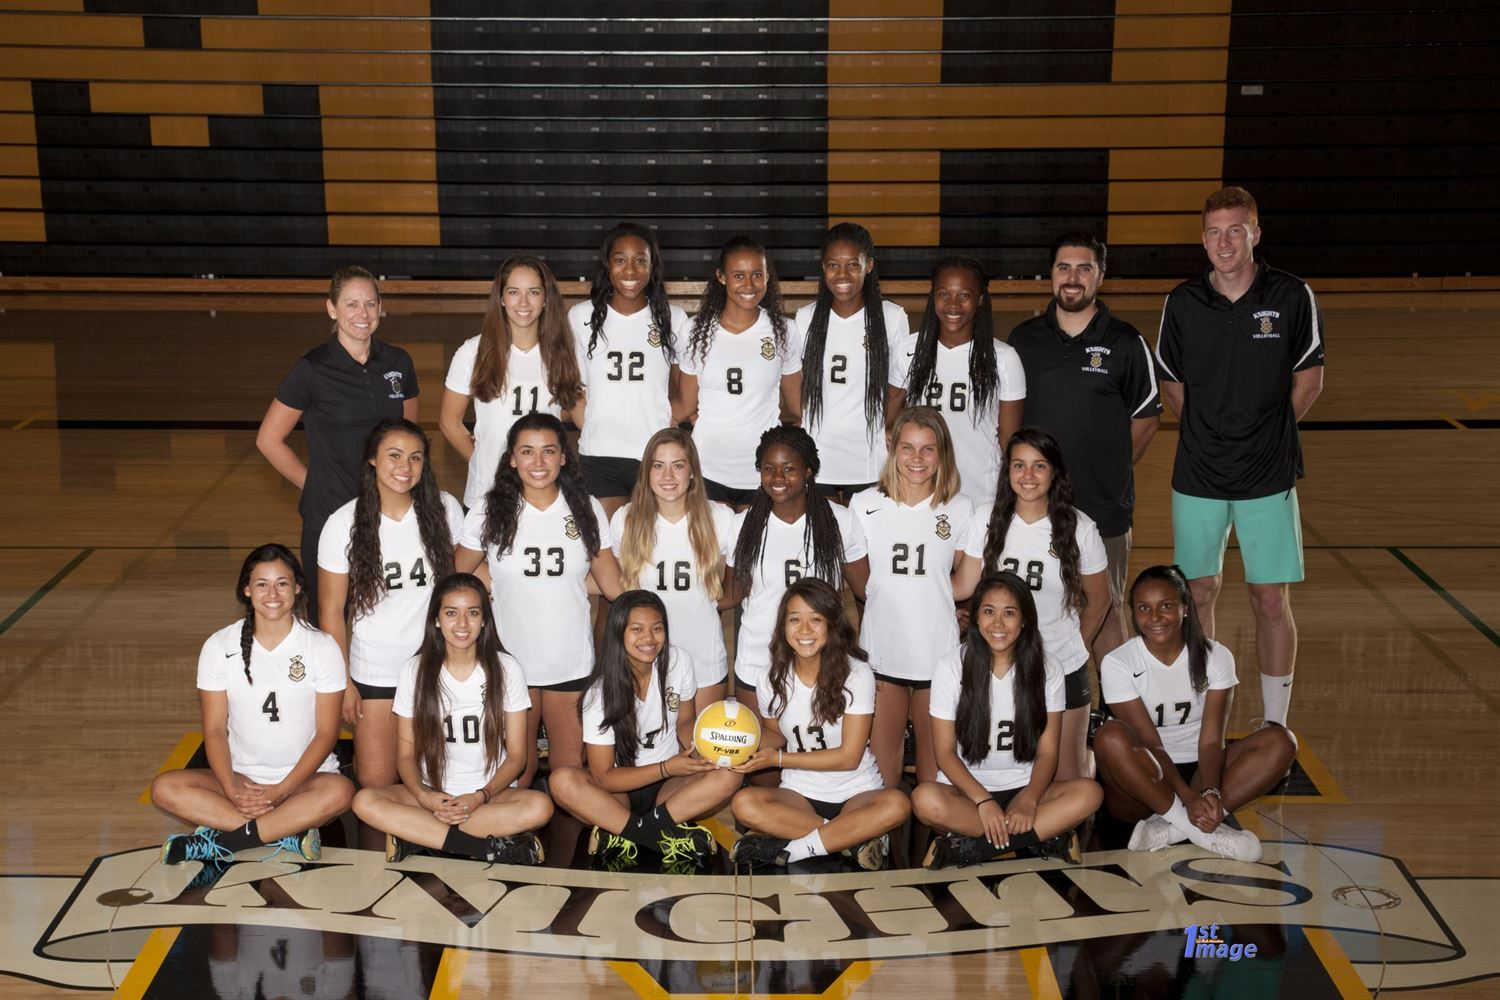 Bishop Montgomery High School - Girls' Varsity Volleyball